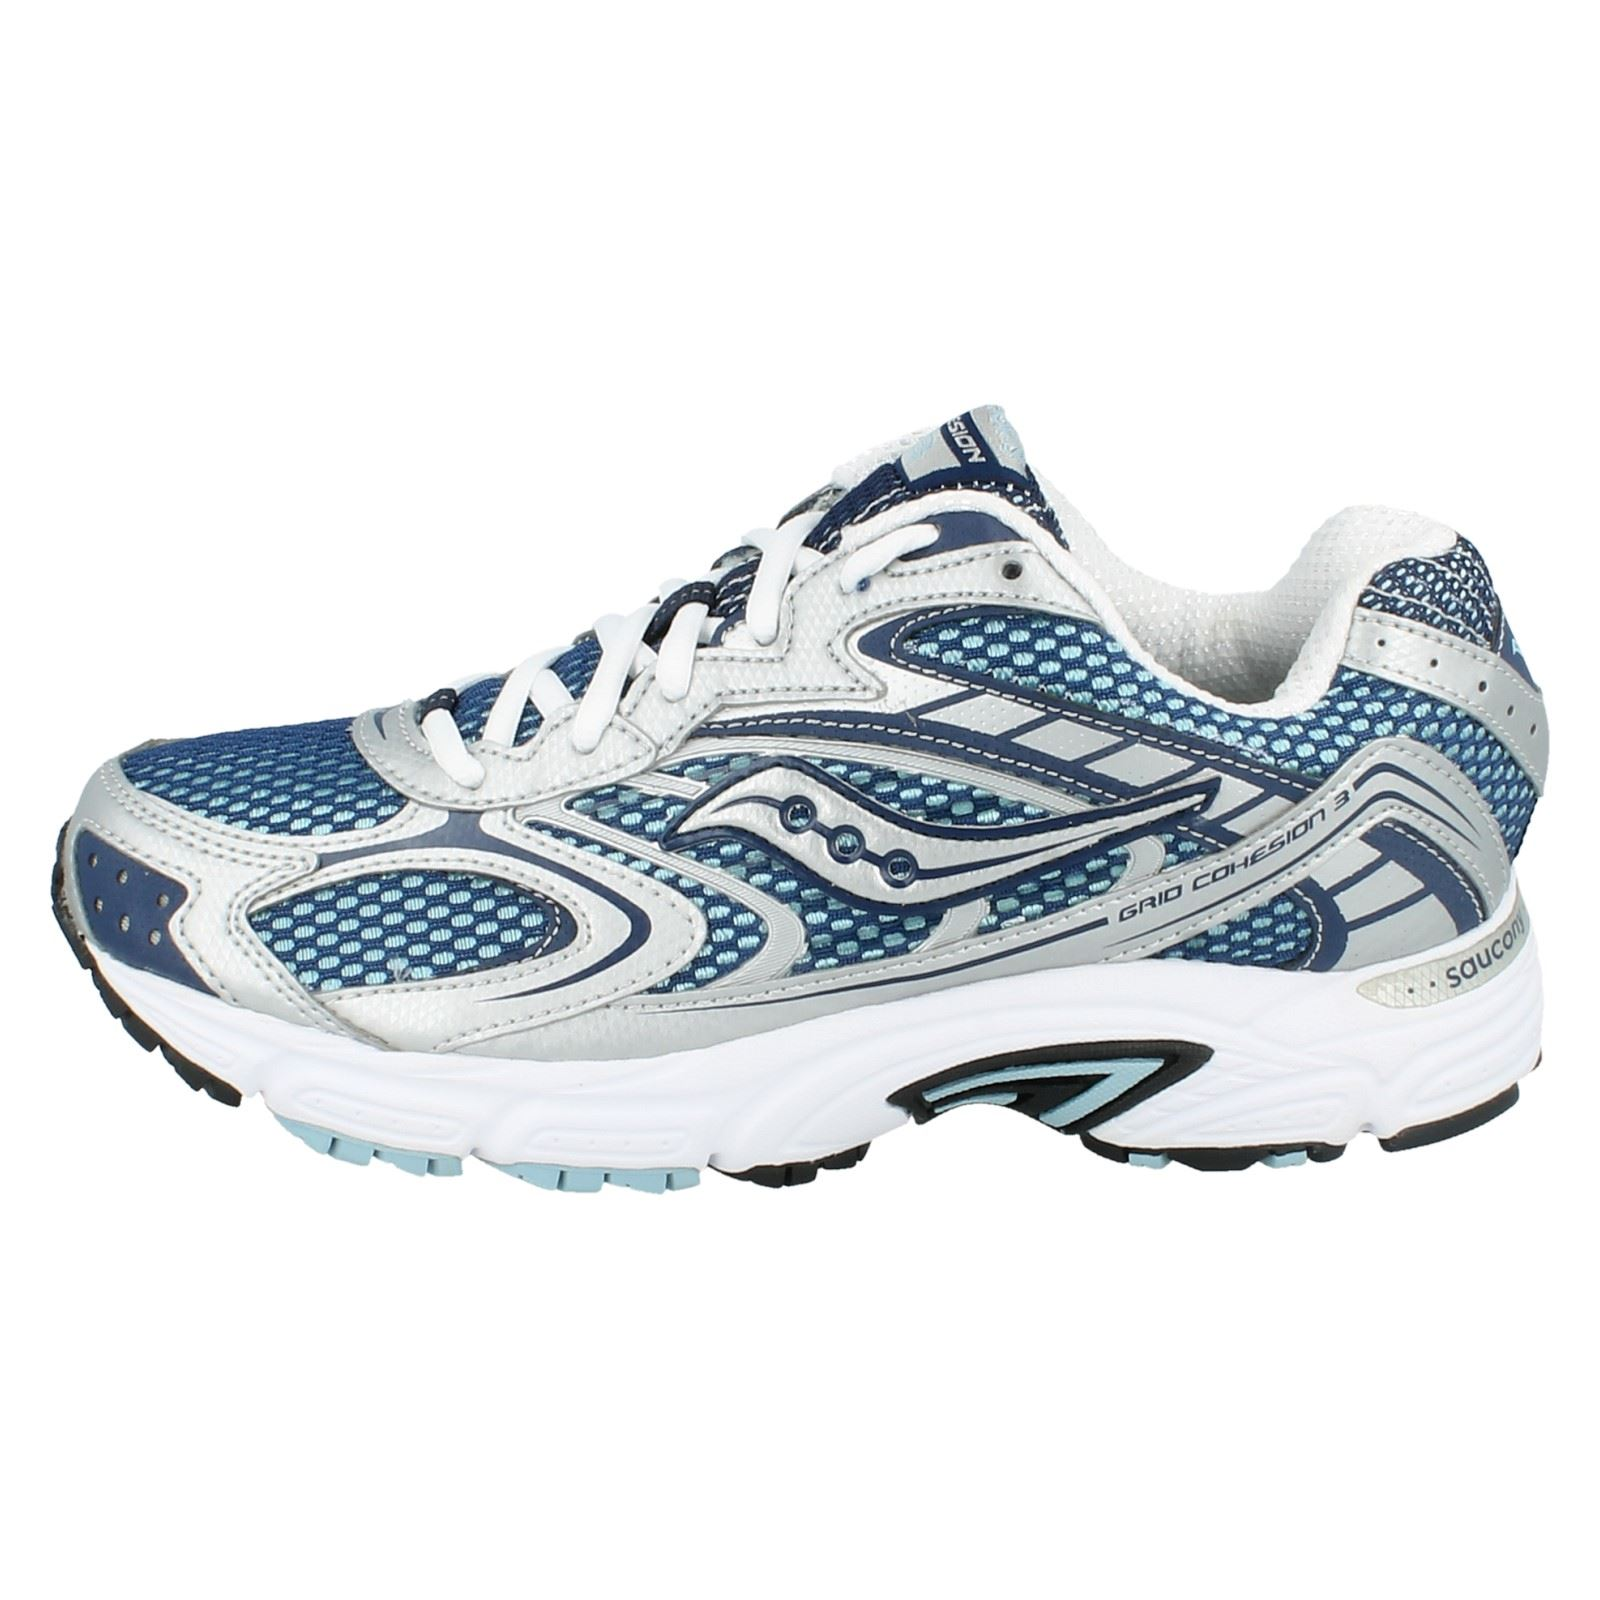 New Saucony Cohesion  Size  Womens Shoes